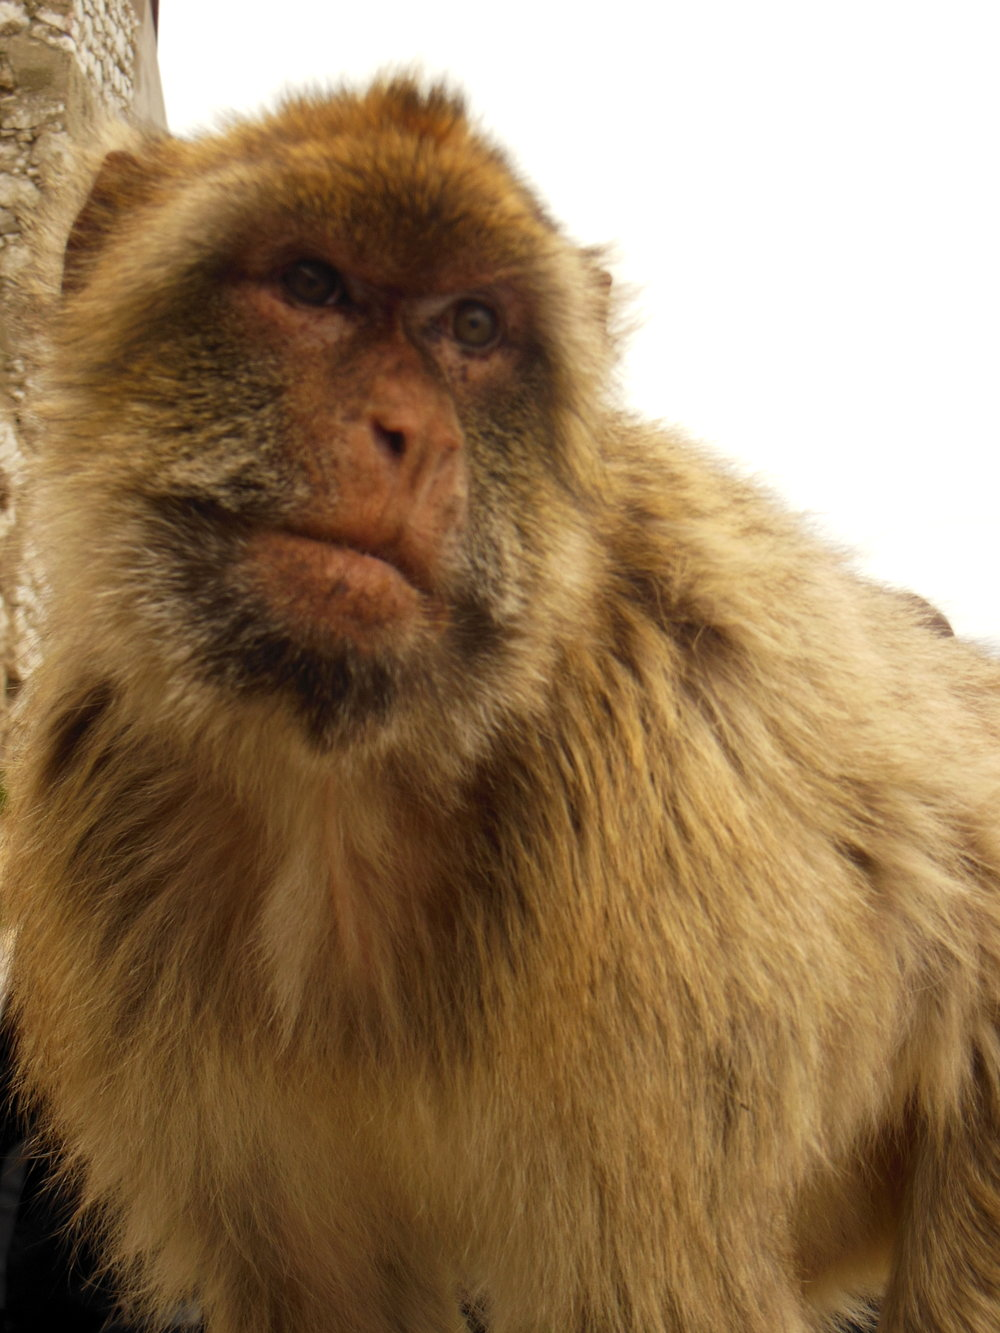 As adorable as they look, BEWARE the monkeys! They are notorious pick-pockets and food thieves!